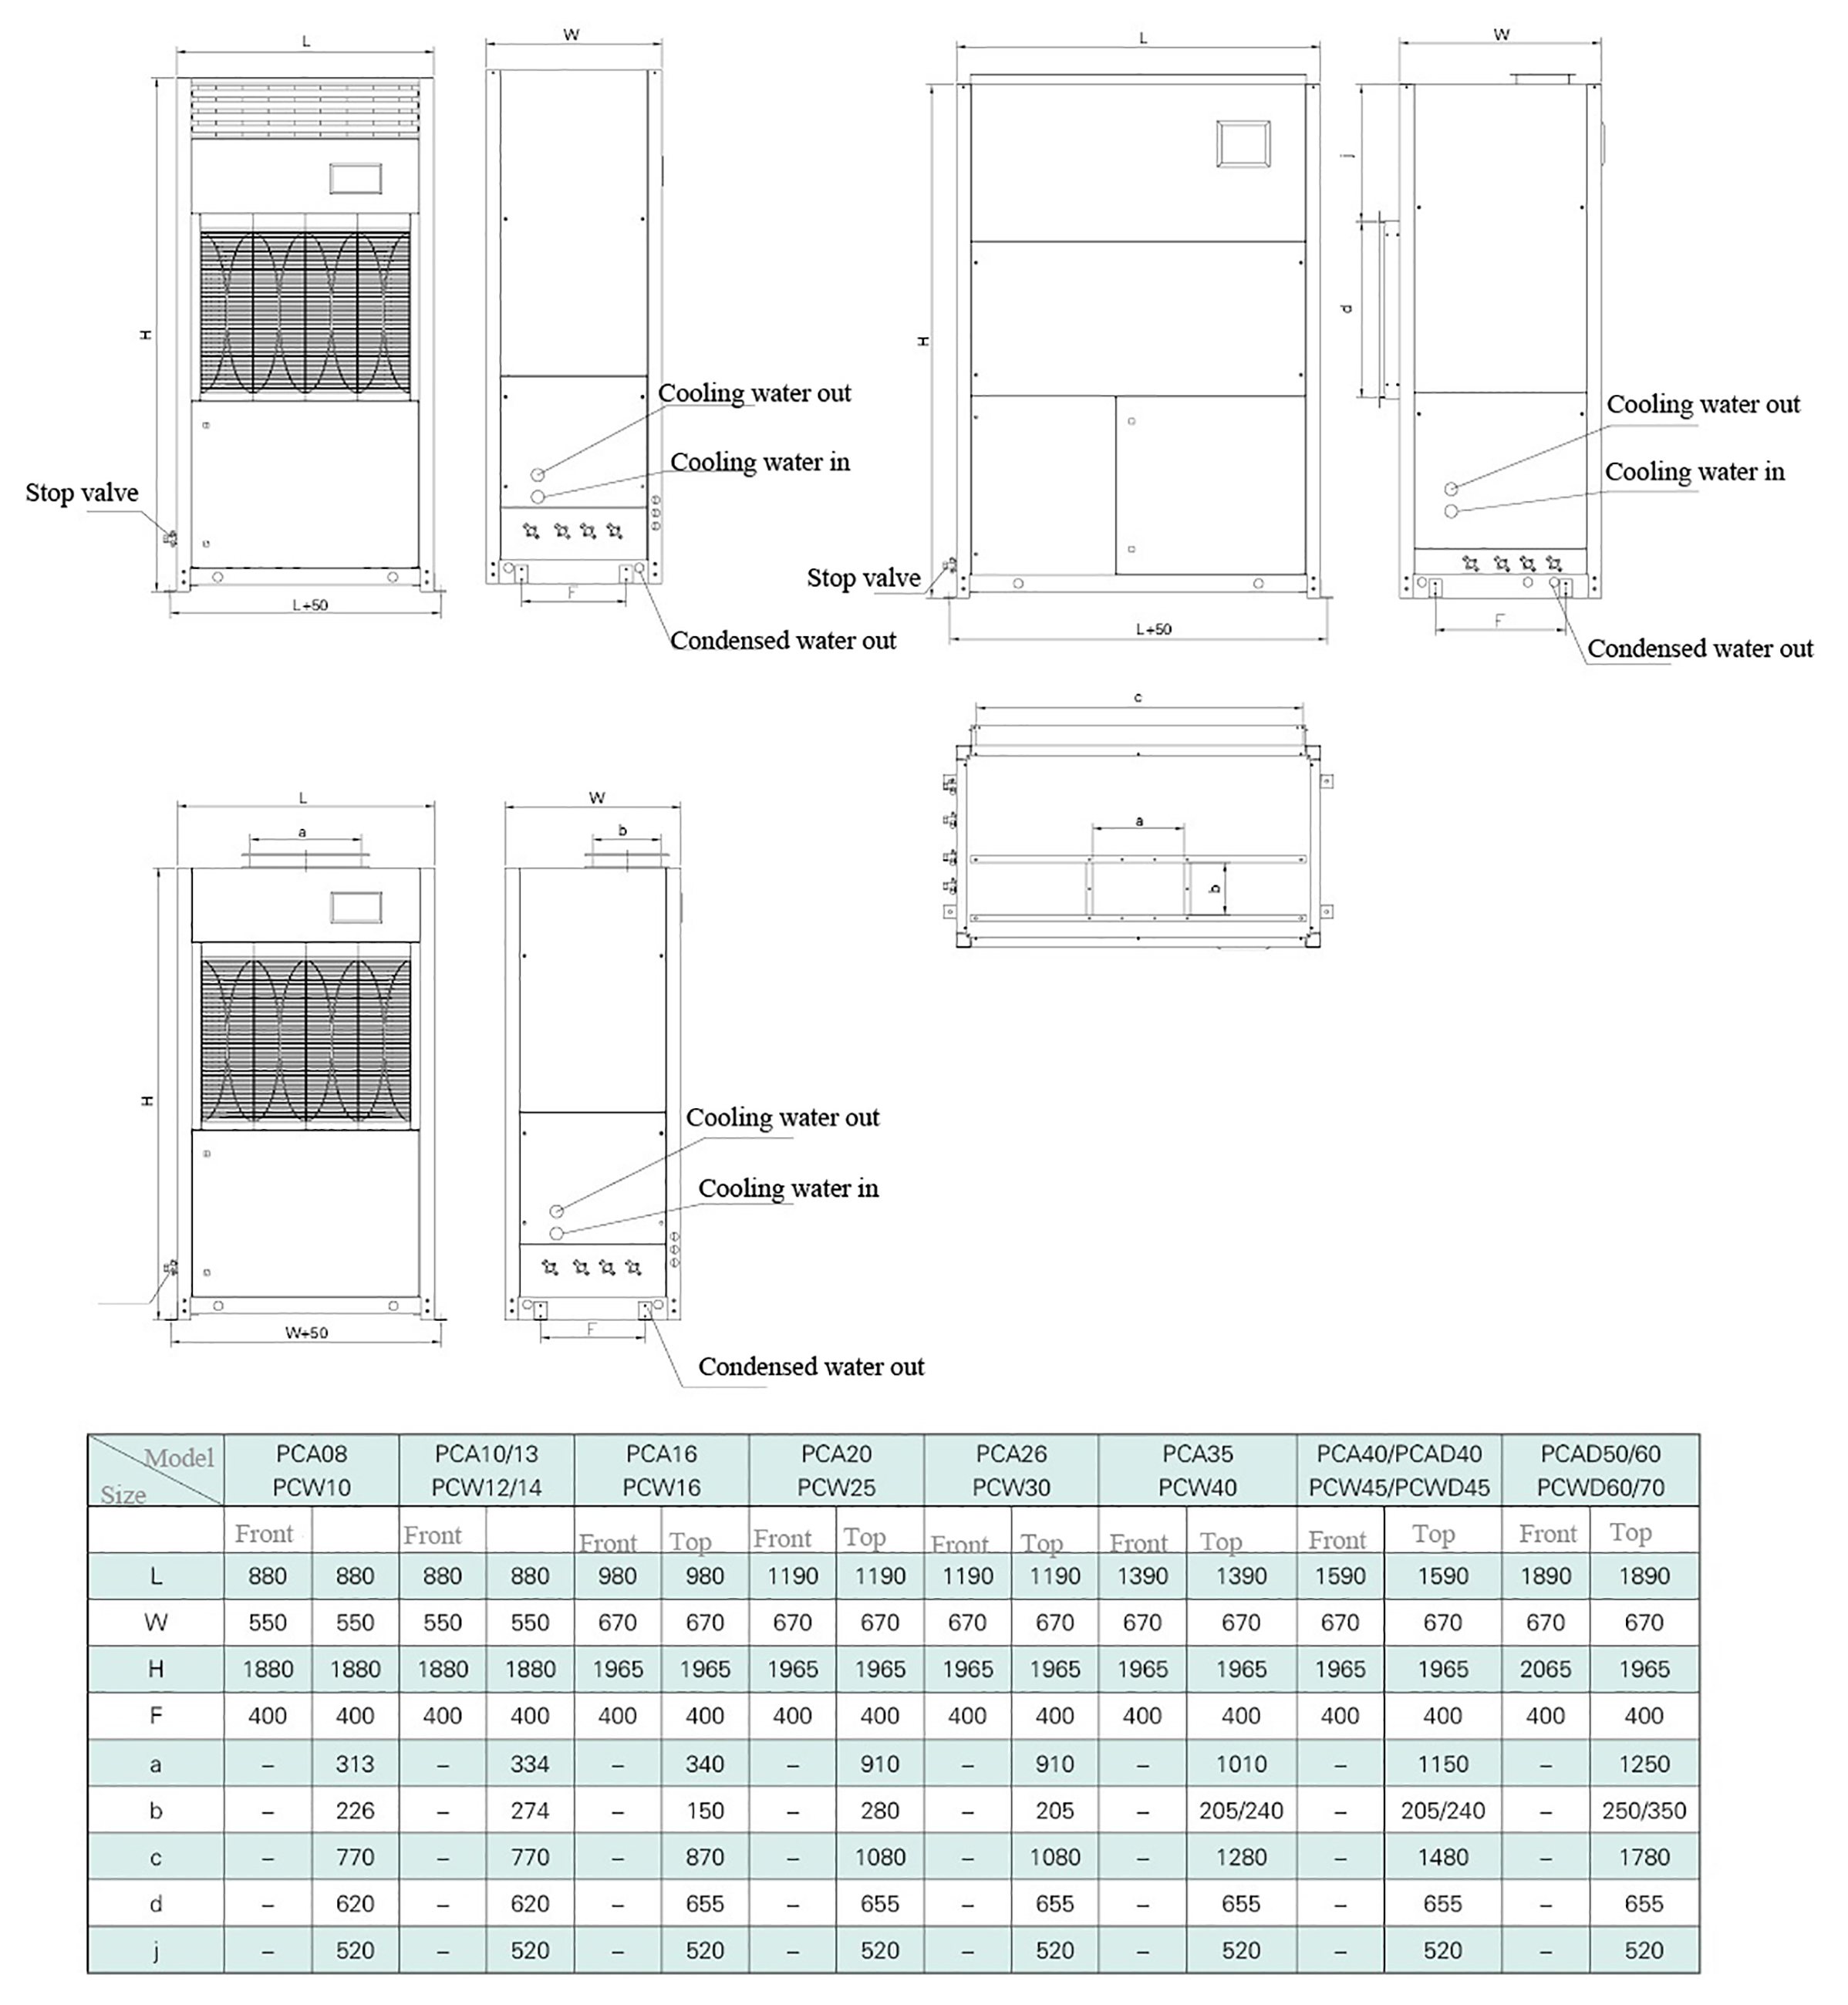 Technical Data - Cabinet Air Condition Unit - pg 14